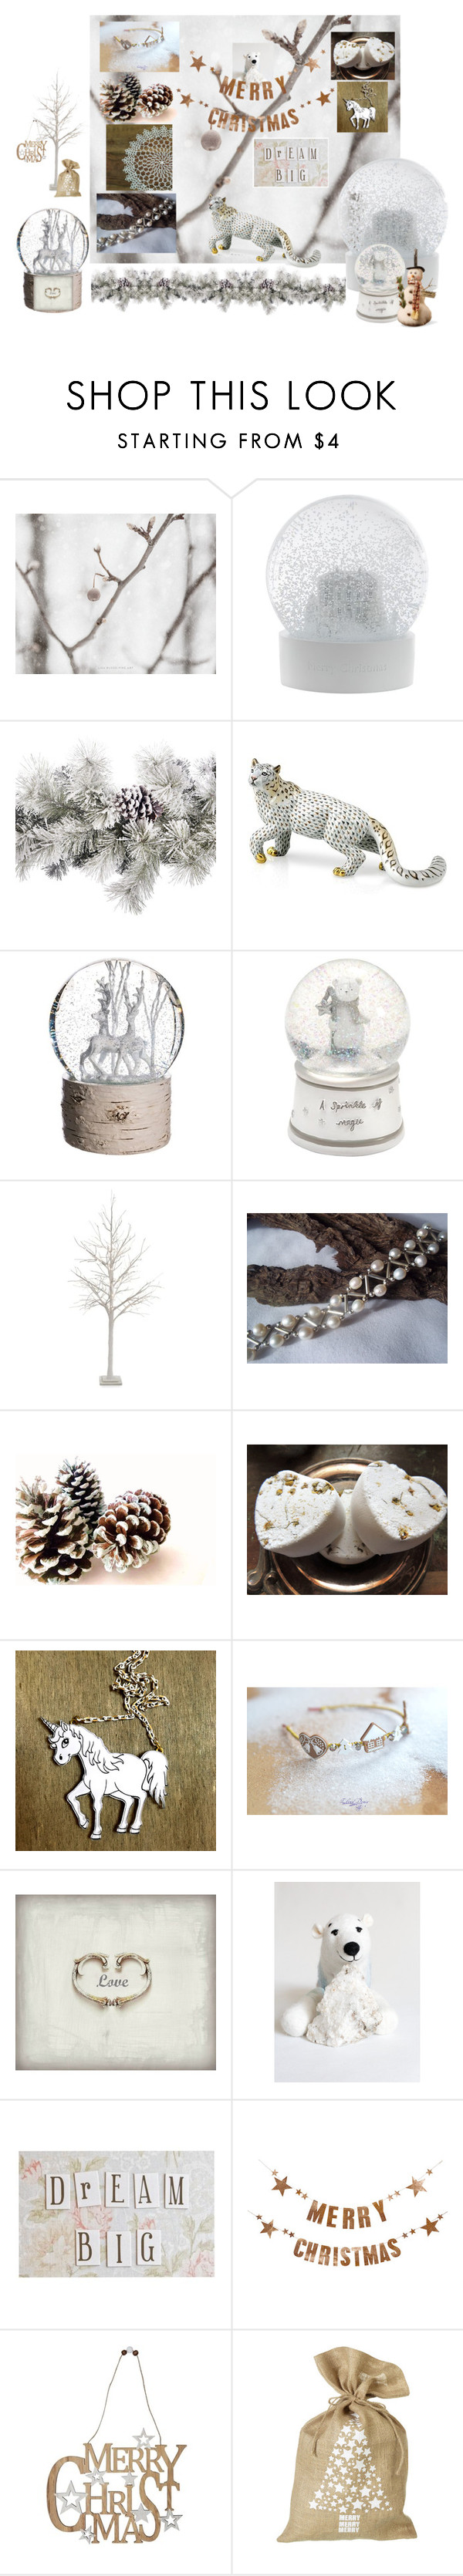 """White christmas decor"" by vualia ❤ liked on Polyvore featuring Wedgwood, Amara, Herend, Allstate Floral, Mamas & Papas, Kess InHouse, Bloomingville, M&Co, Parlane and National Tree Company"